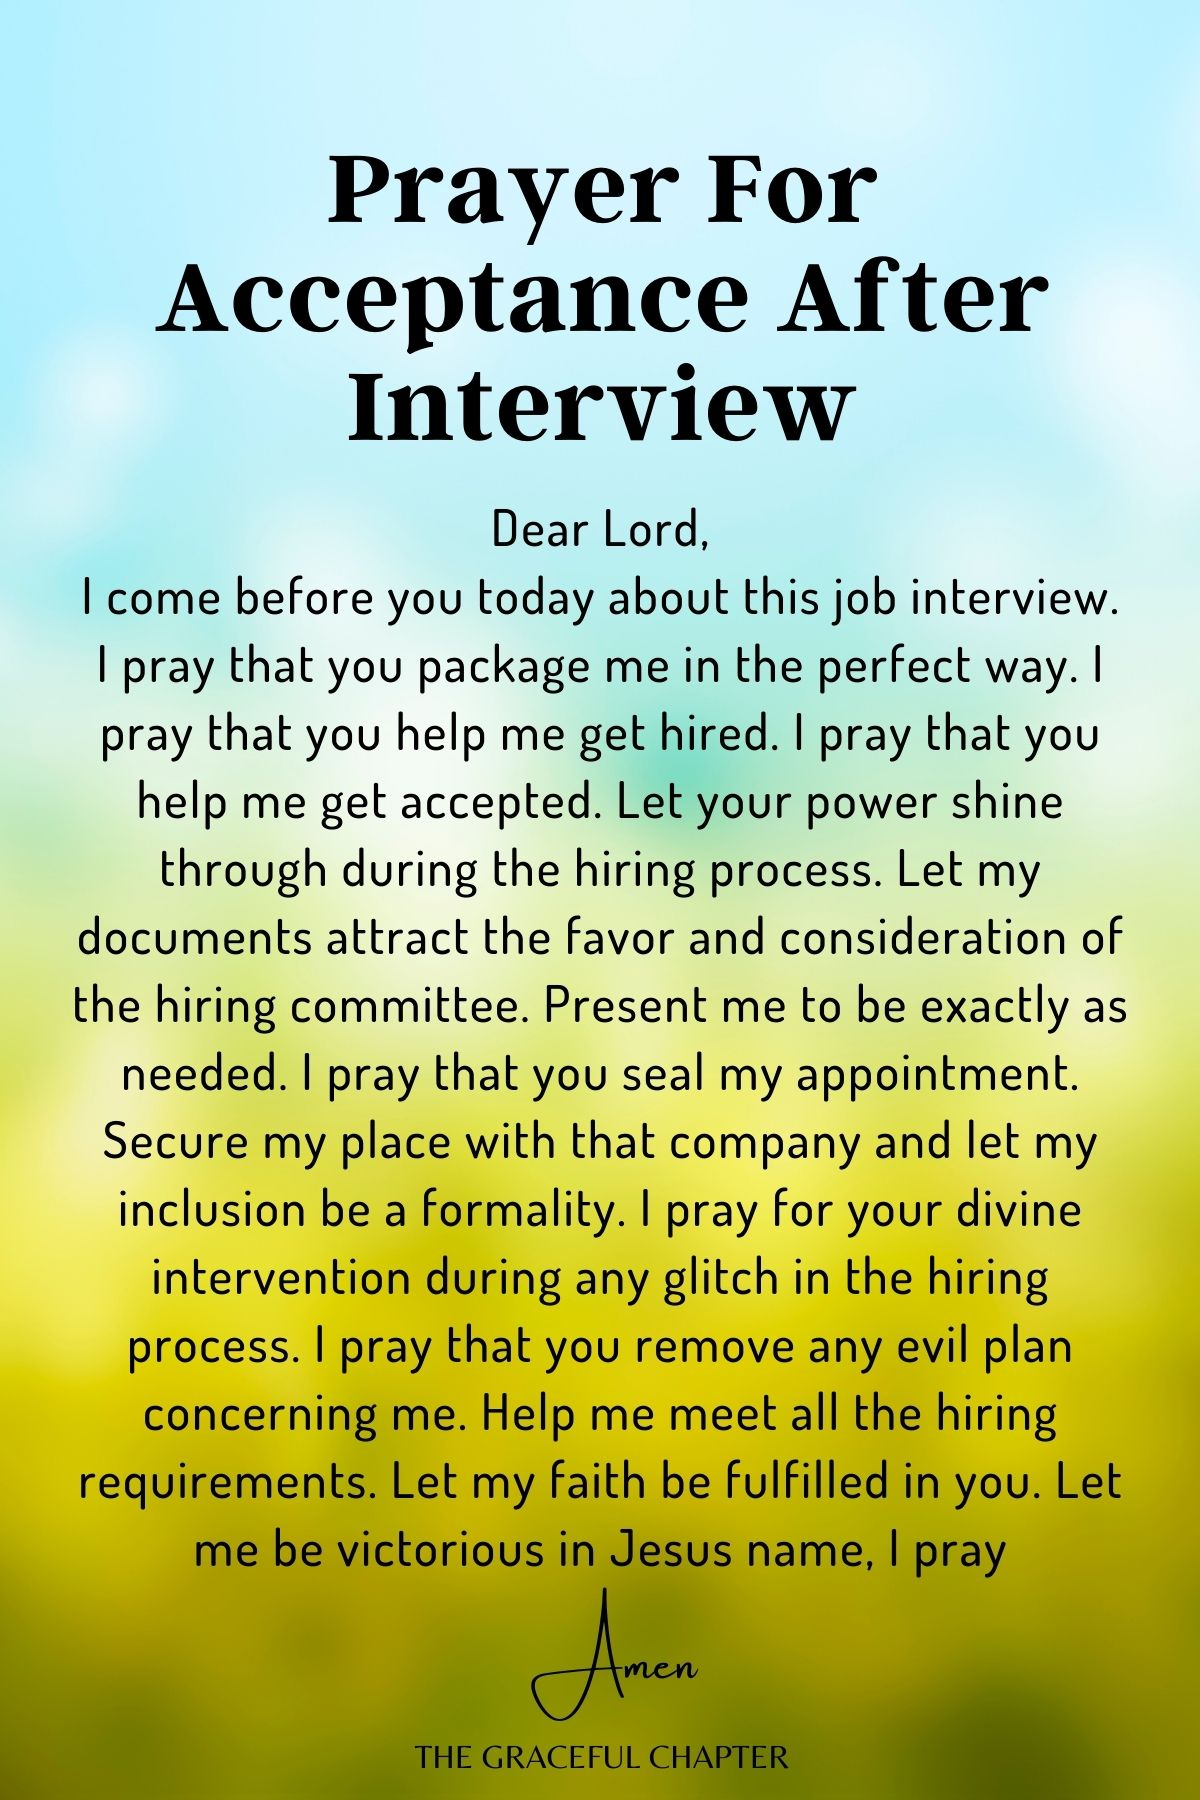 Prayer for acceptance after Interview